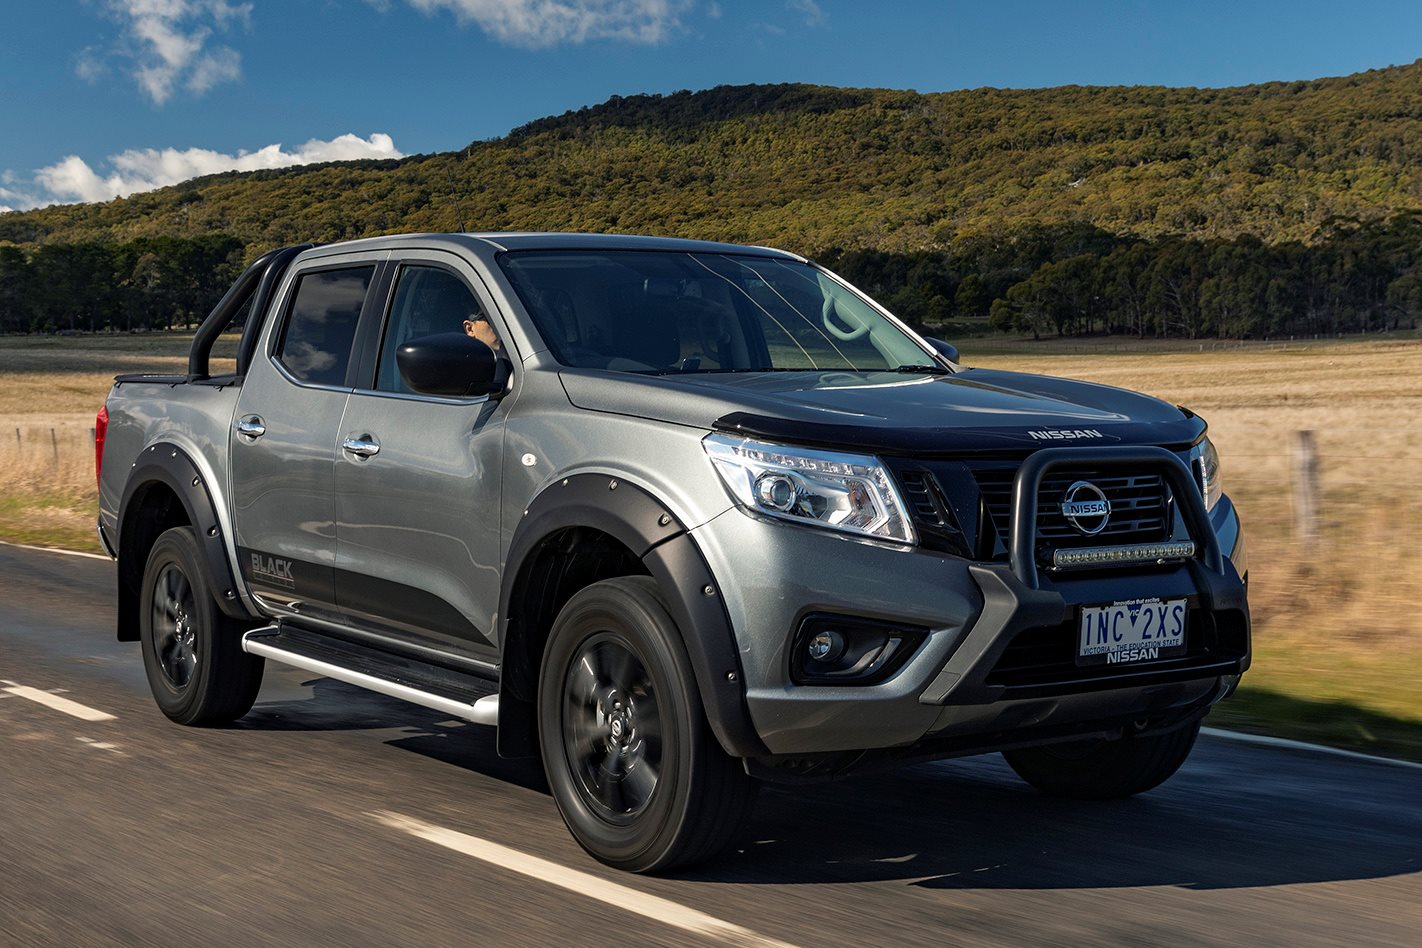 84 Best Review 2019 Nissan Navara History by 2019 Nissan Navara